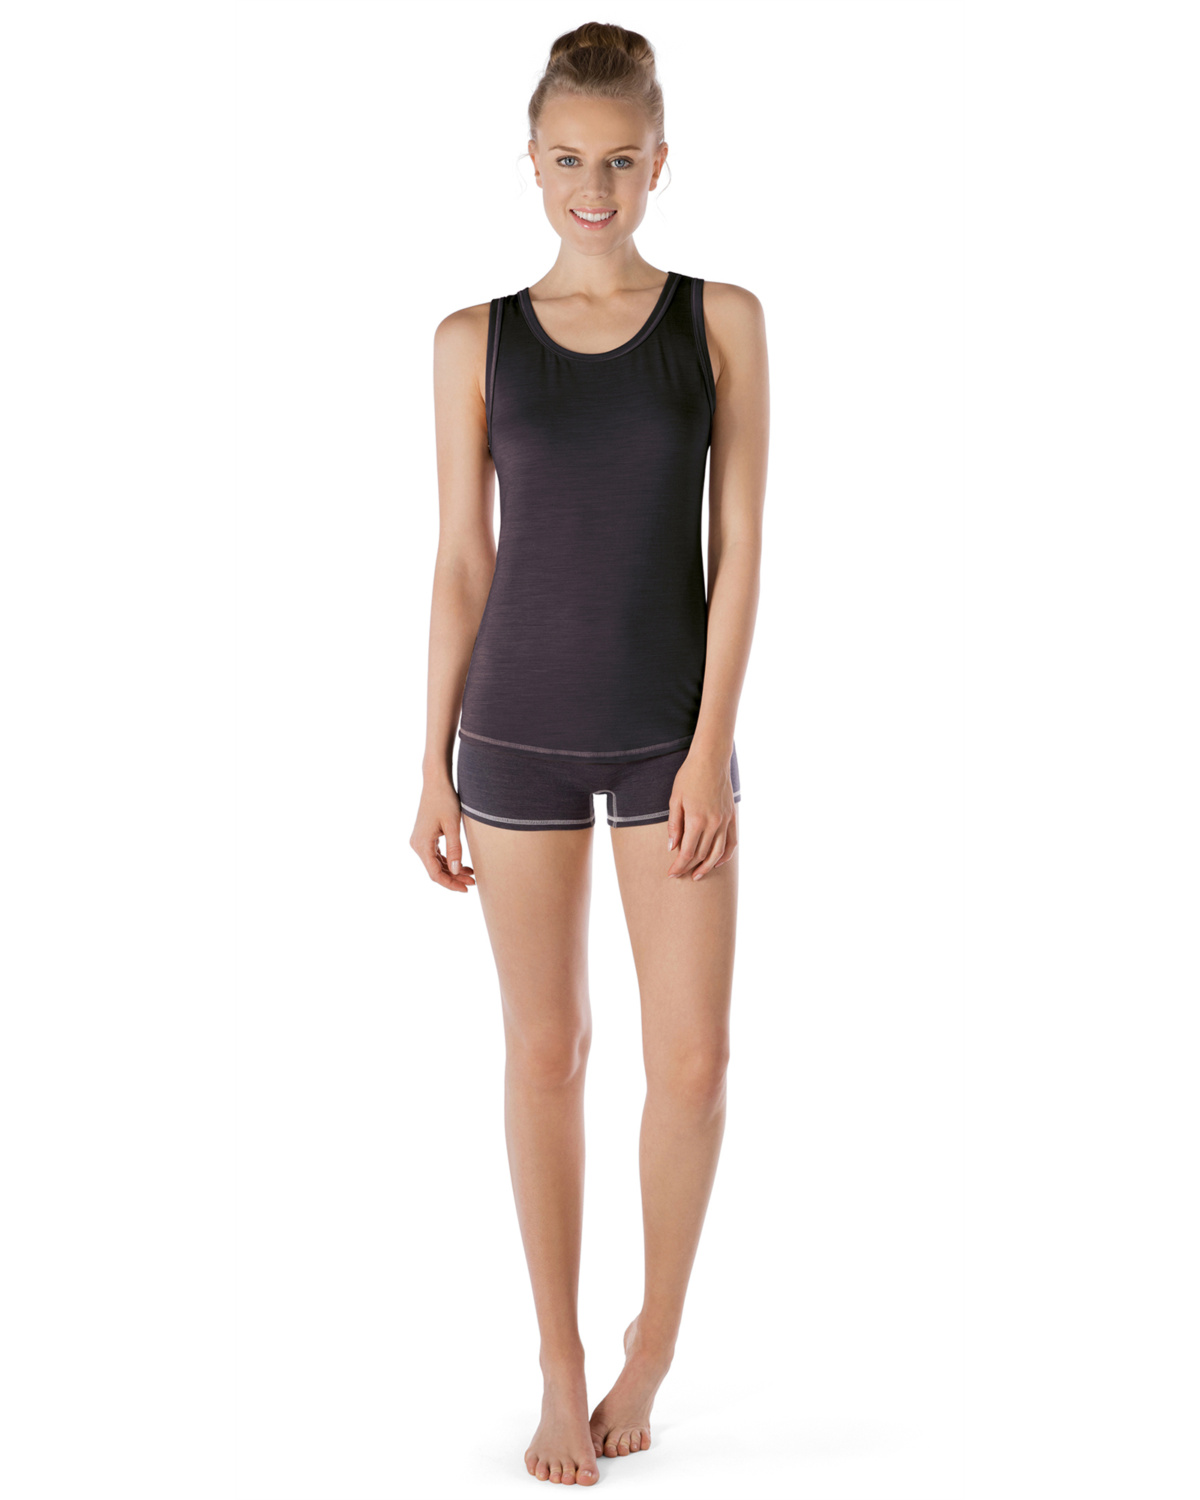 Skiny_ActiveWool_083406_4676